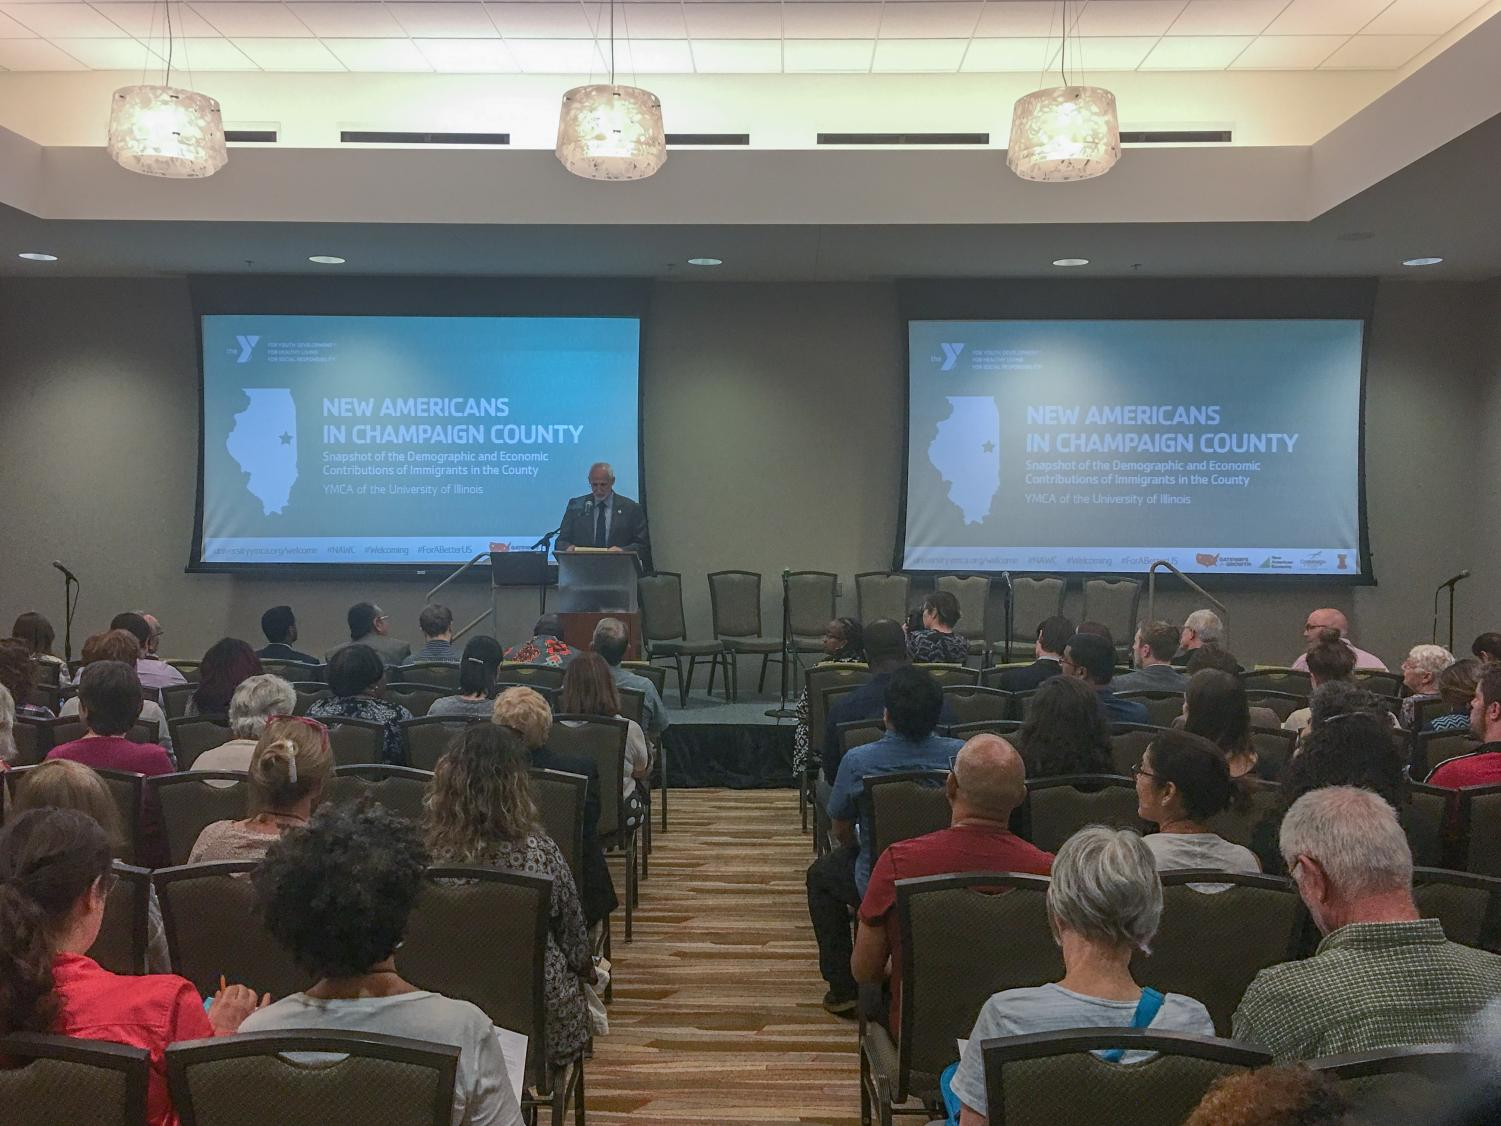 Mike Doyle, the executive director of the University YMCA, makes an opening statement at the New Americans in Champaign County community program at the I-Hotel & Conference Center on Wednesday. The program allowed community members to come together to discuss the impact of immigrants in the community.